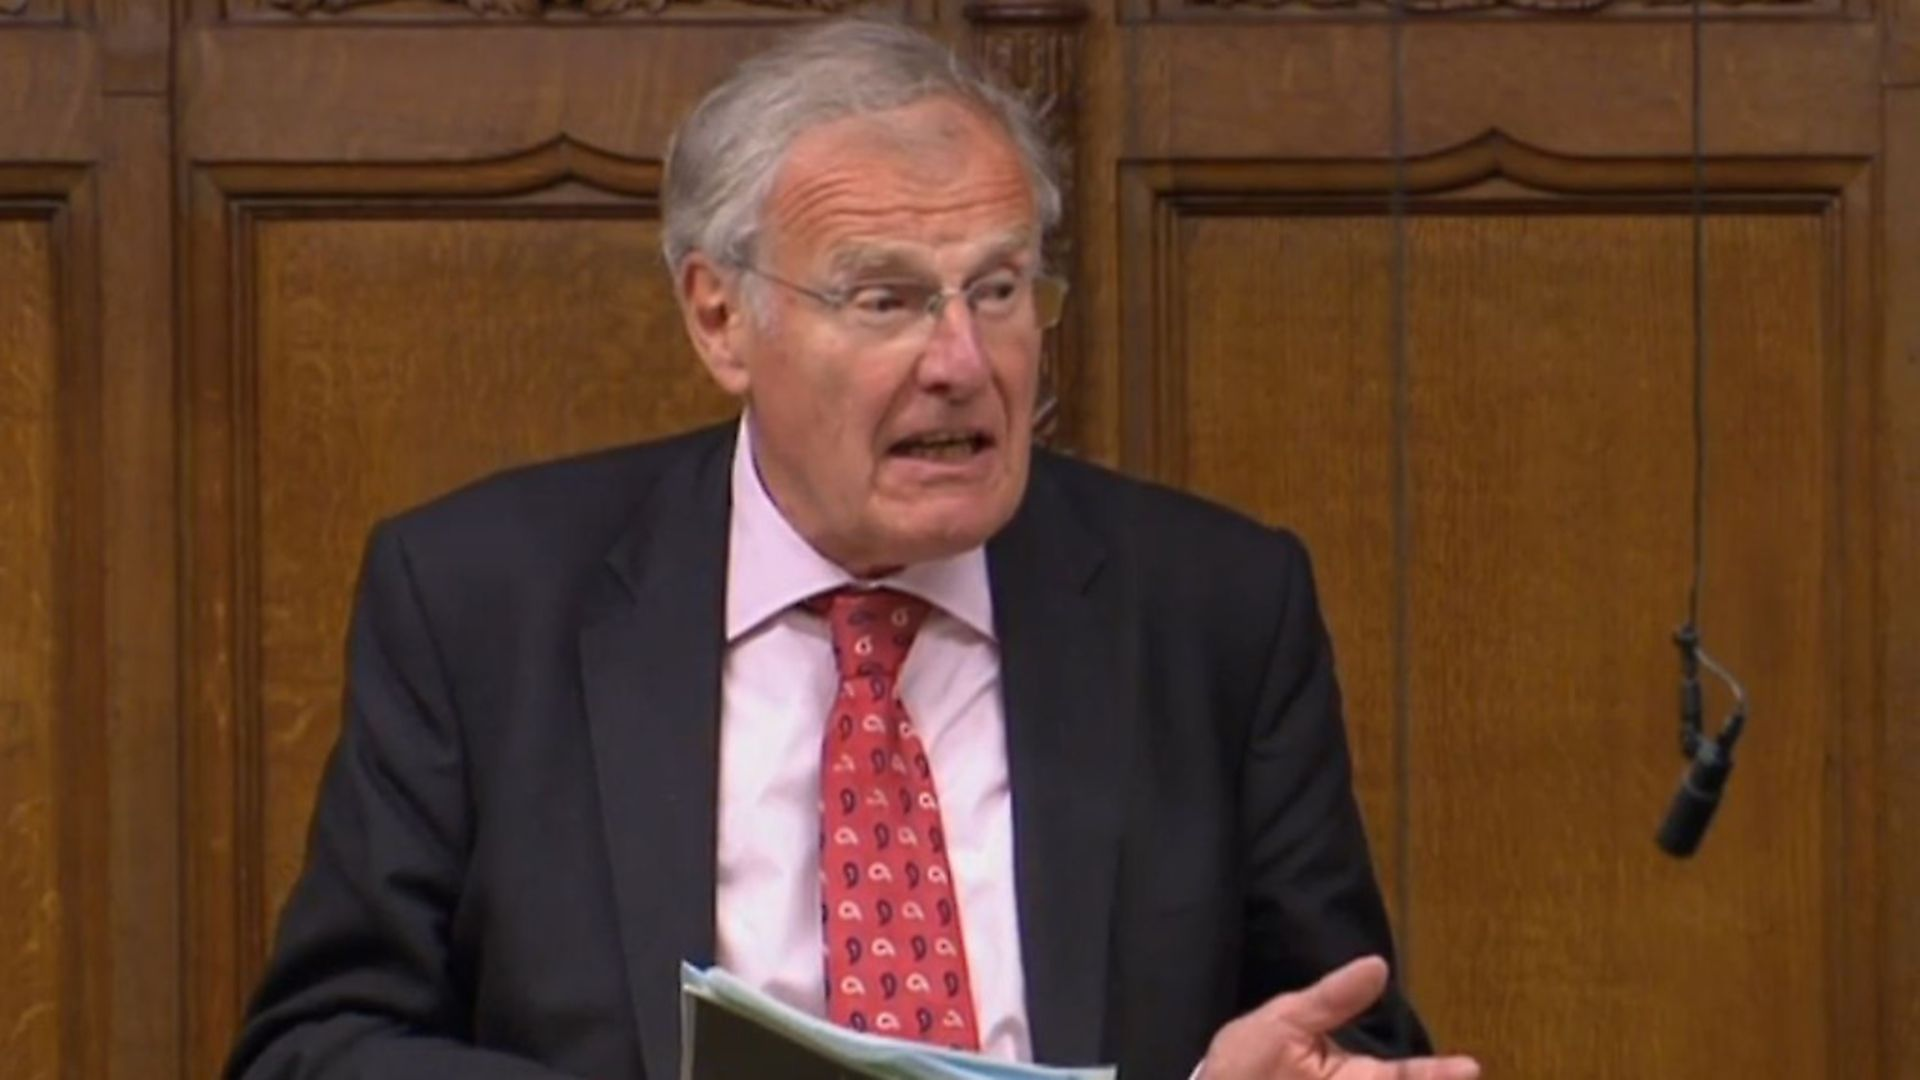 Christopher Chope speaking in the House of Commons. Photograph: PA. - Credit: PA Archive/PA Images